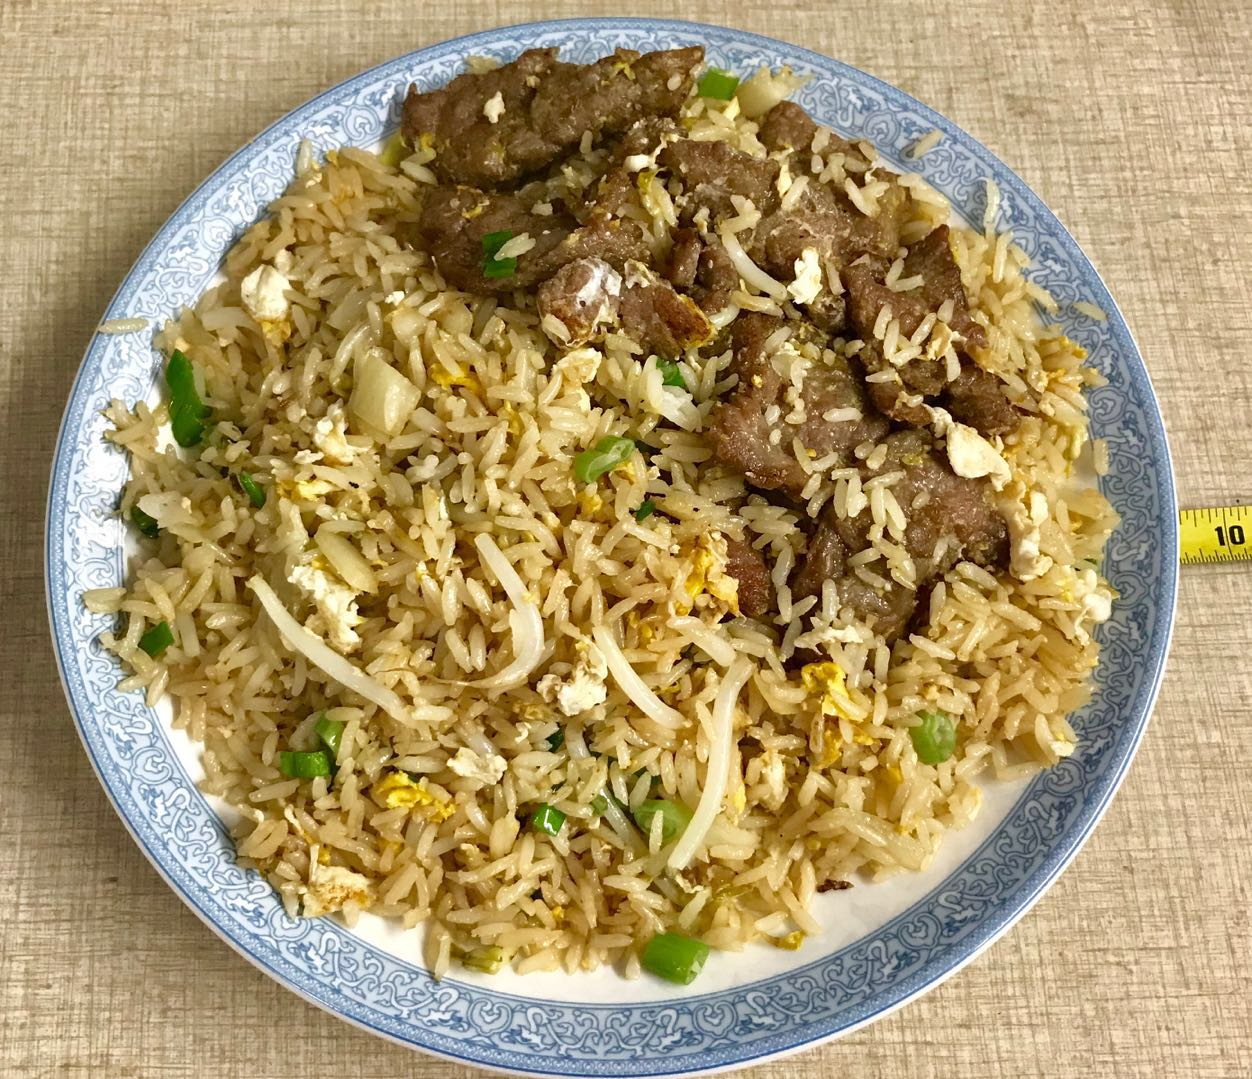 208. Beef Fried Rice